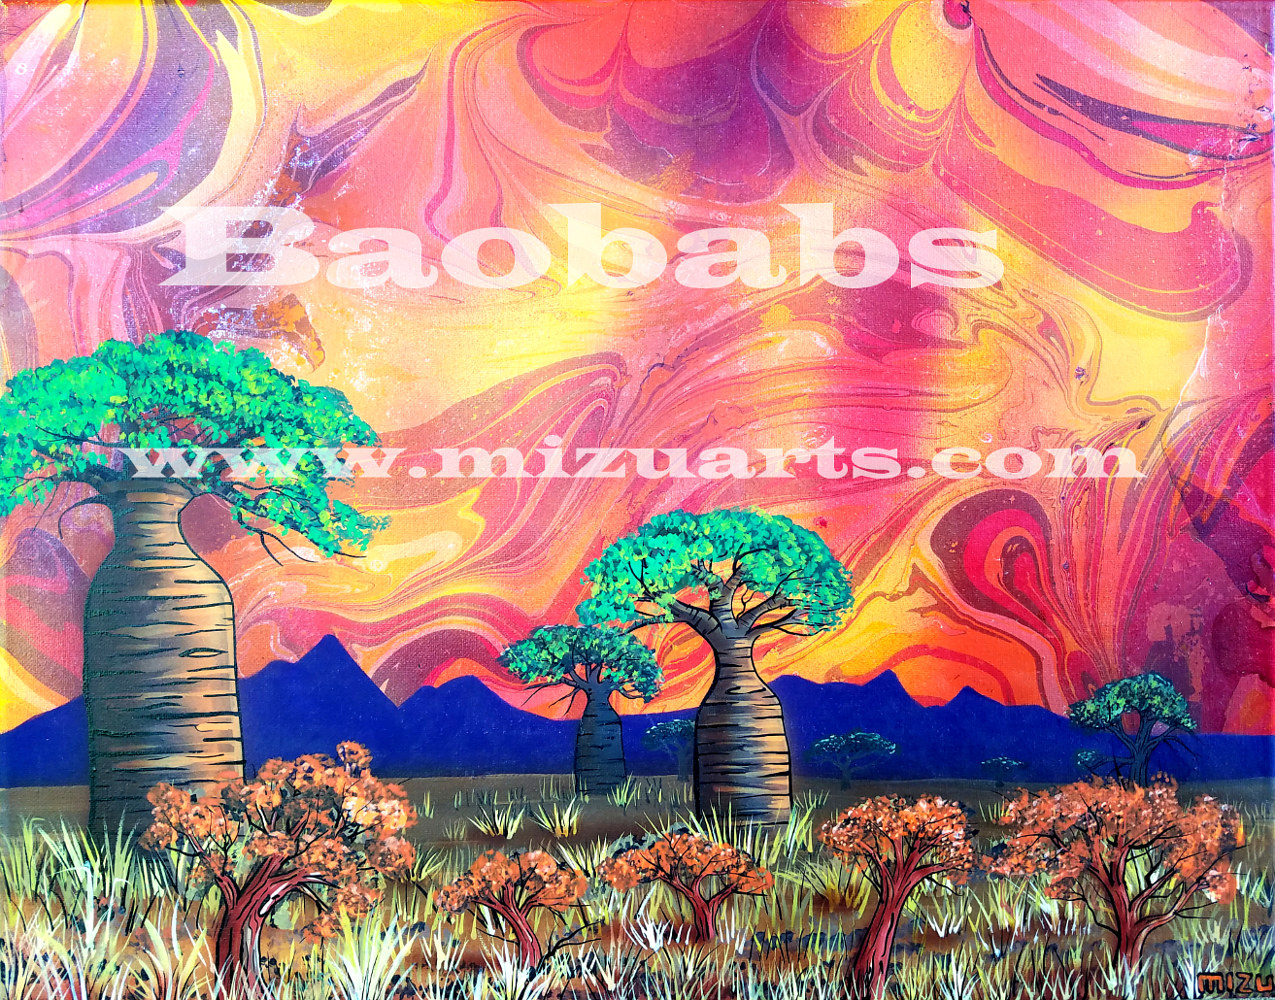 Baobabs  by Isaac Carpenter